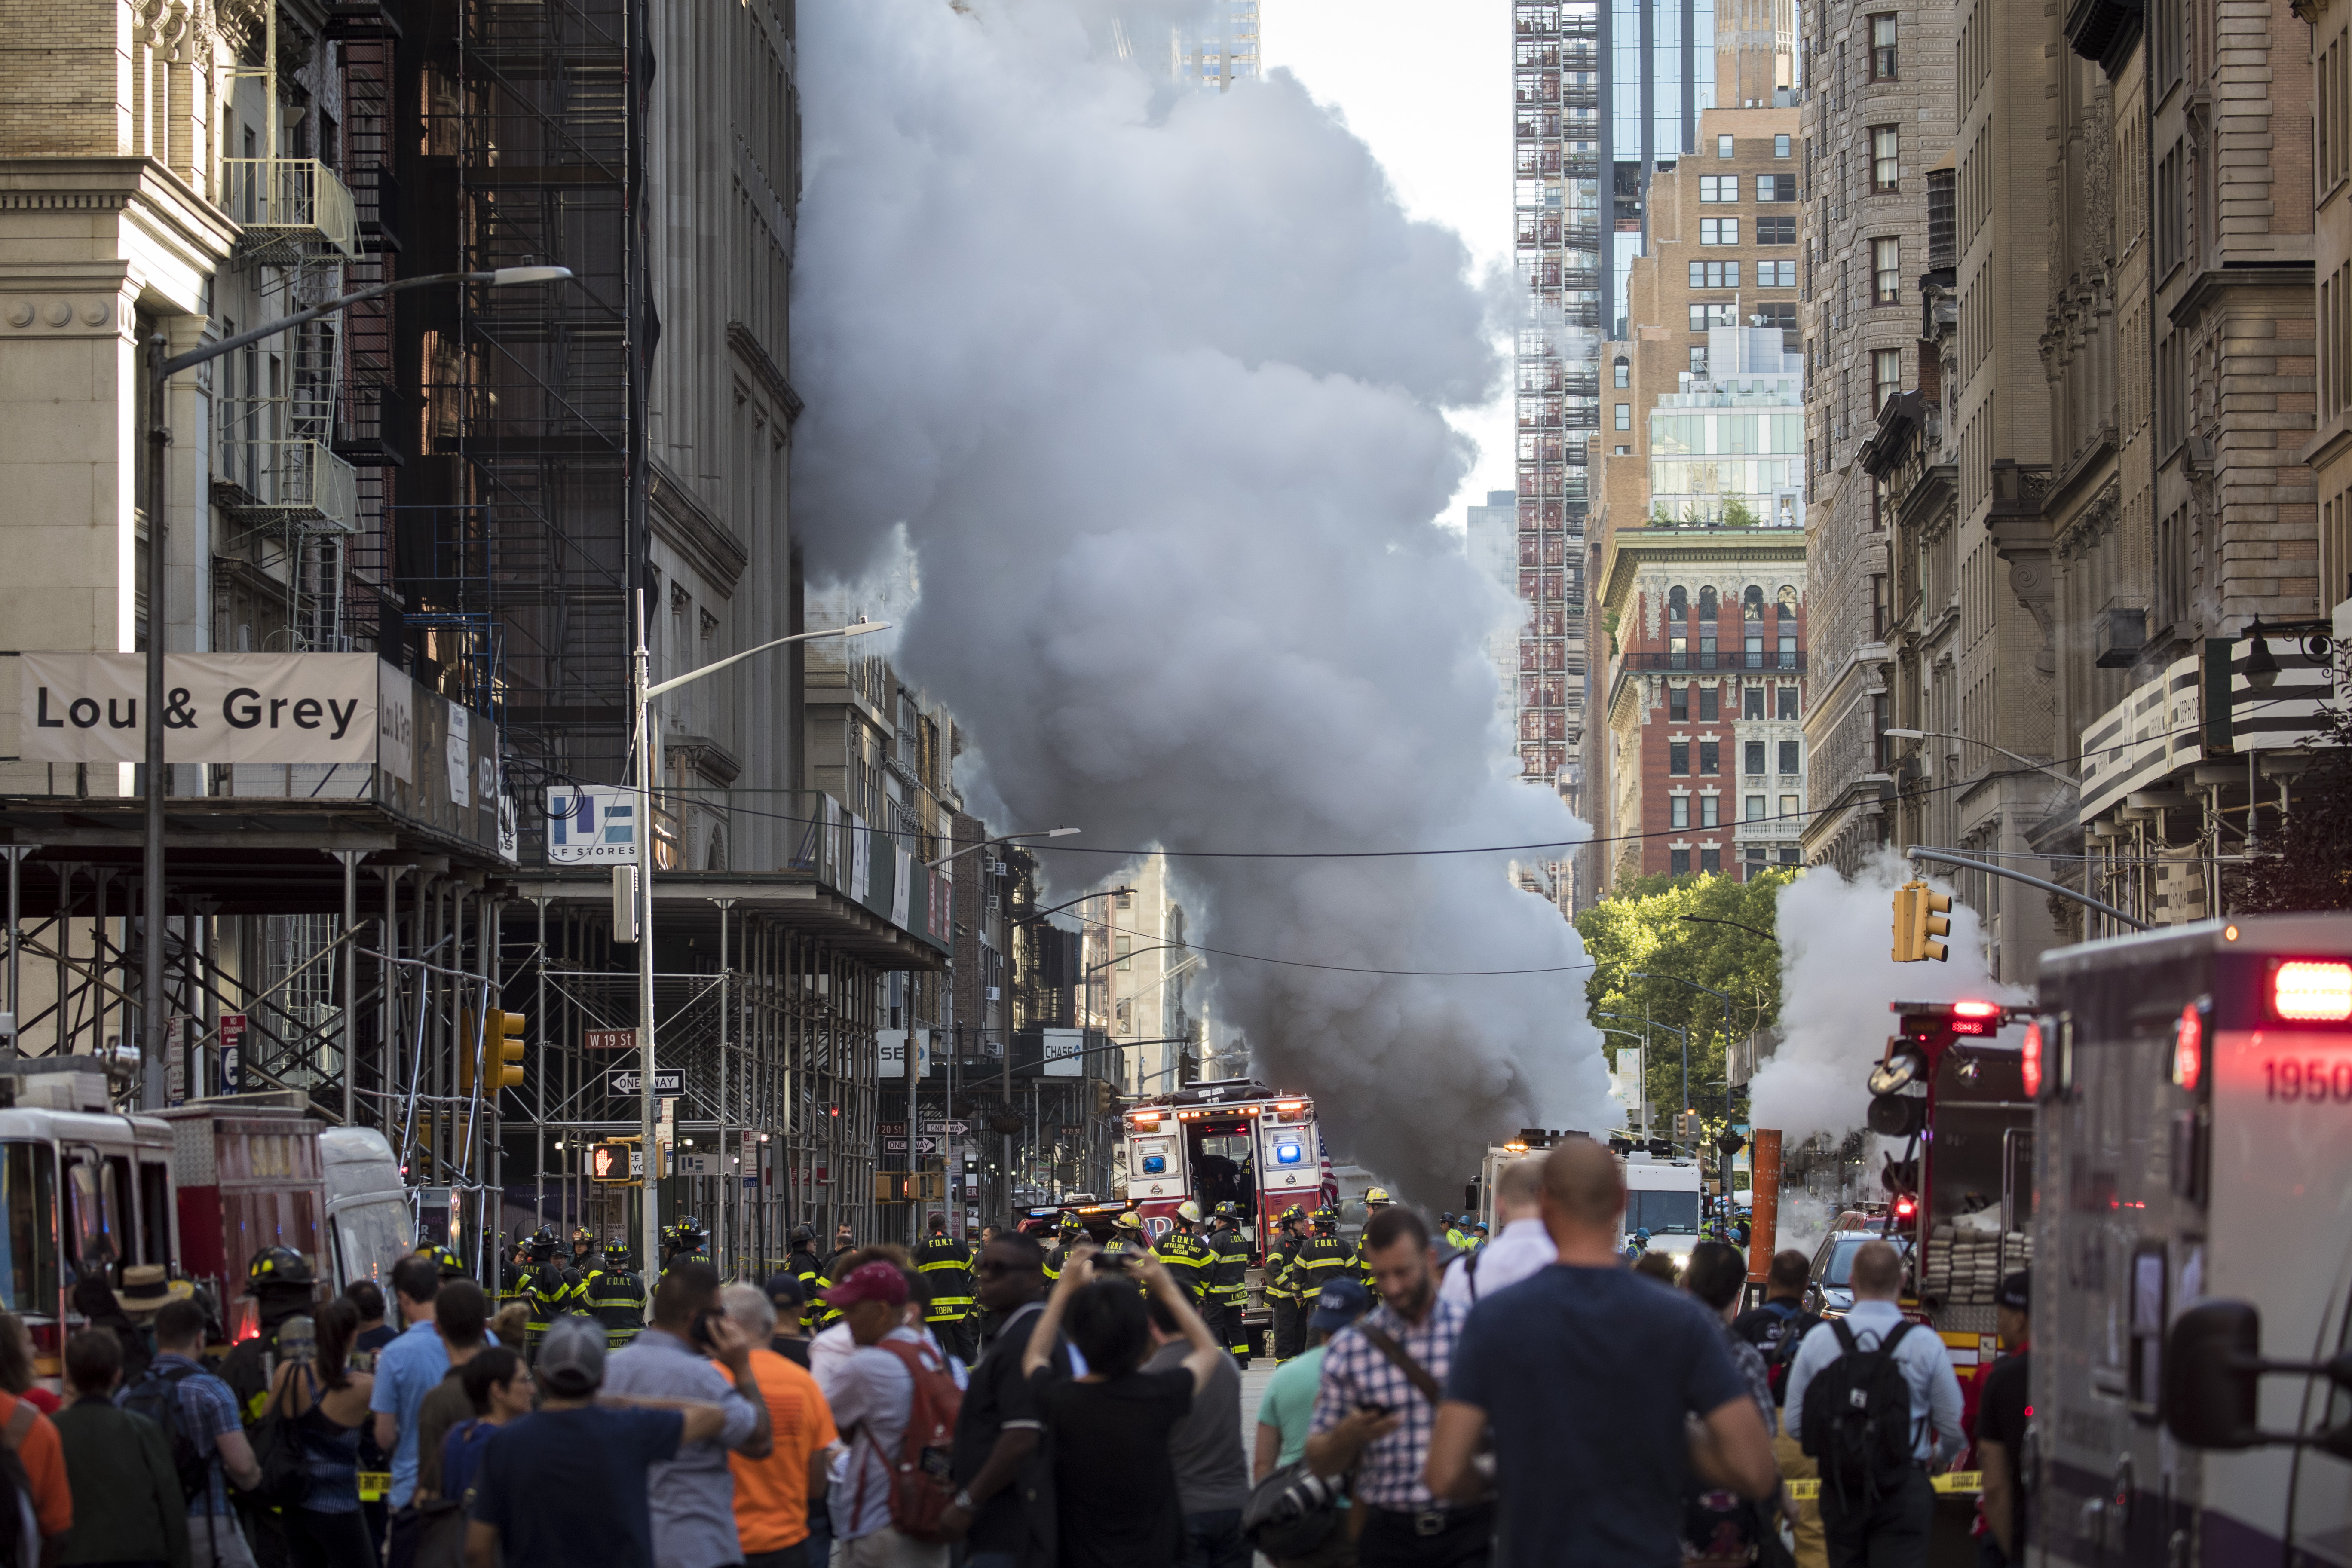 Restaurants Near The Steam Pipe Explosion Are Losing Tens Of Thousands Dollars Eater Ny